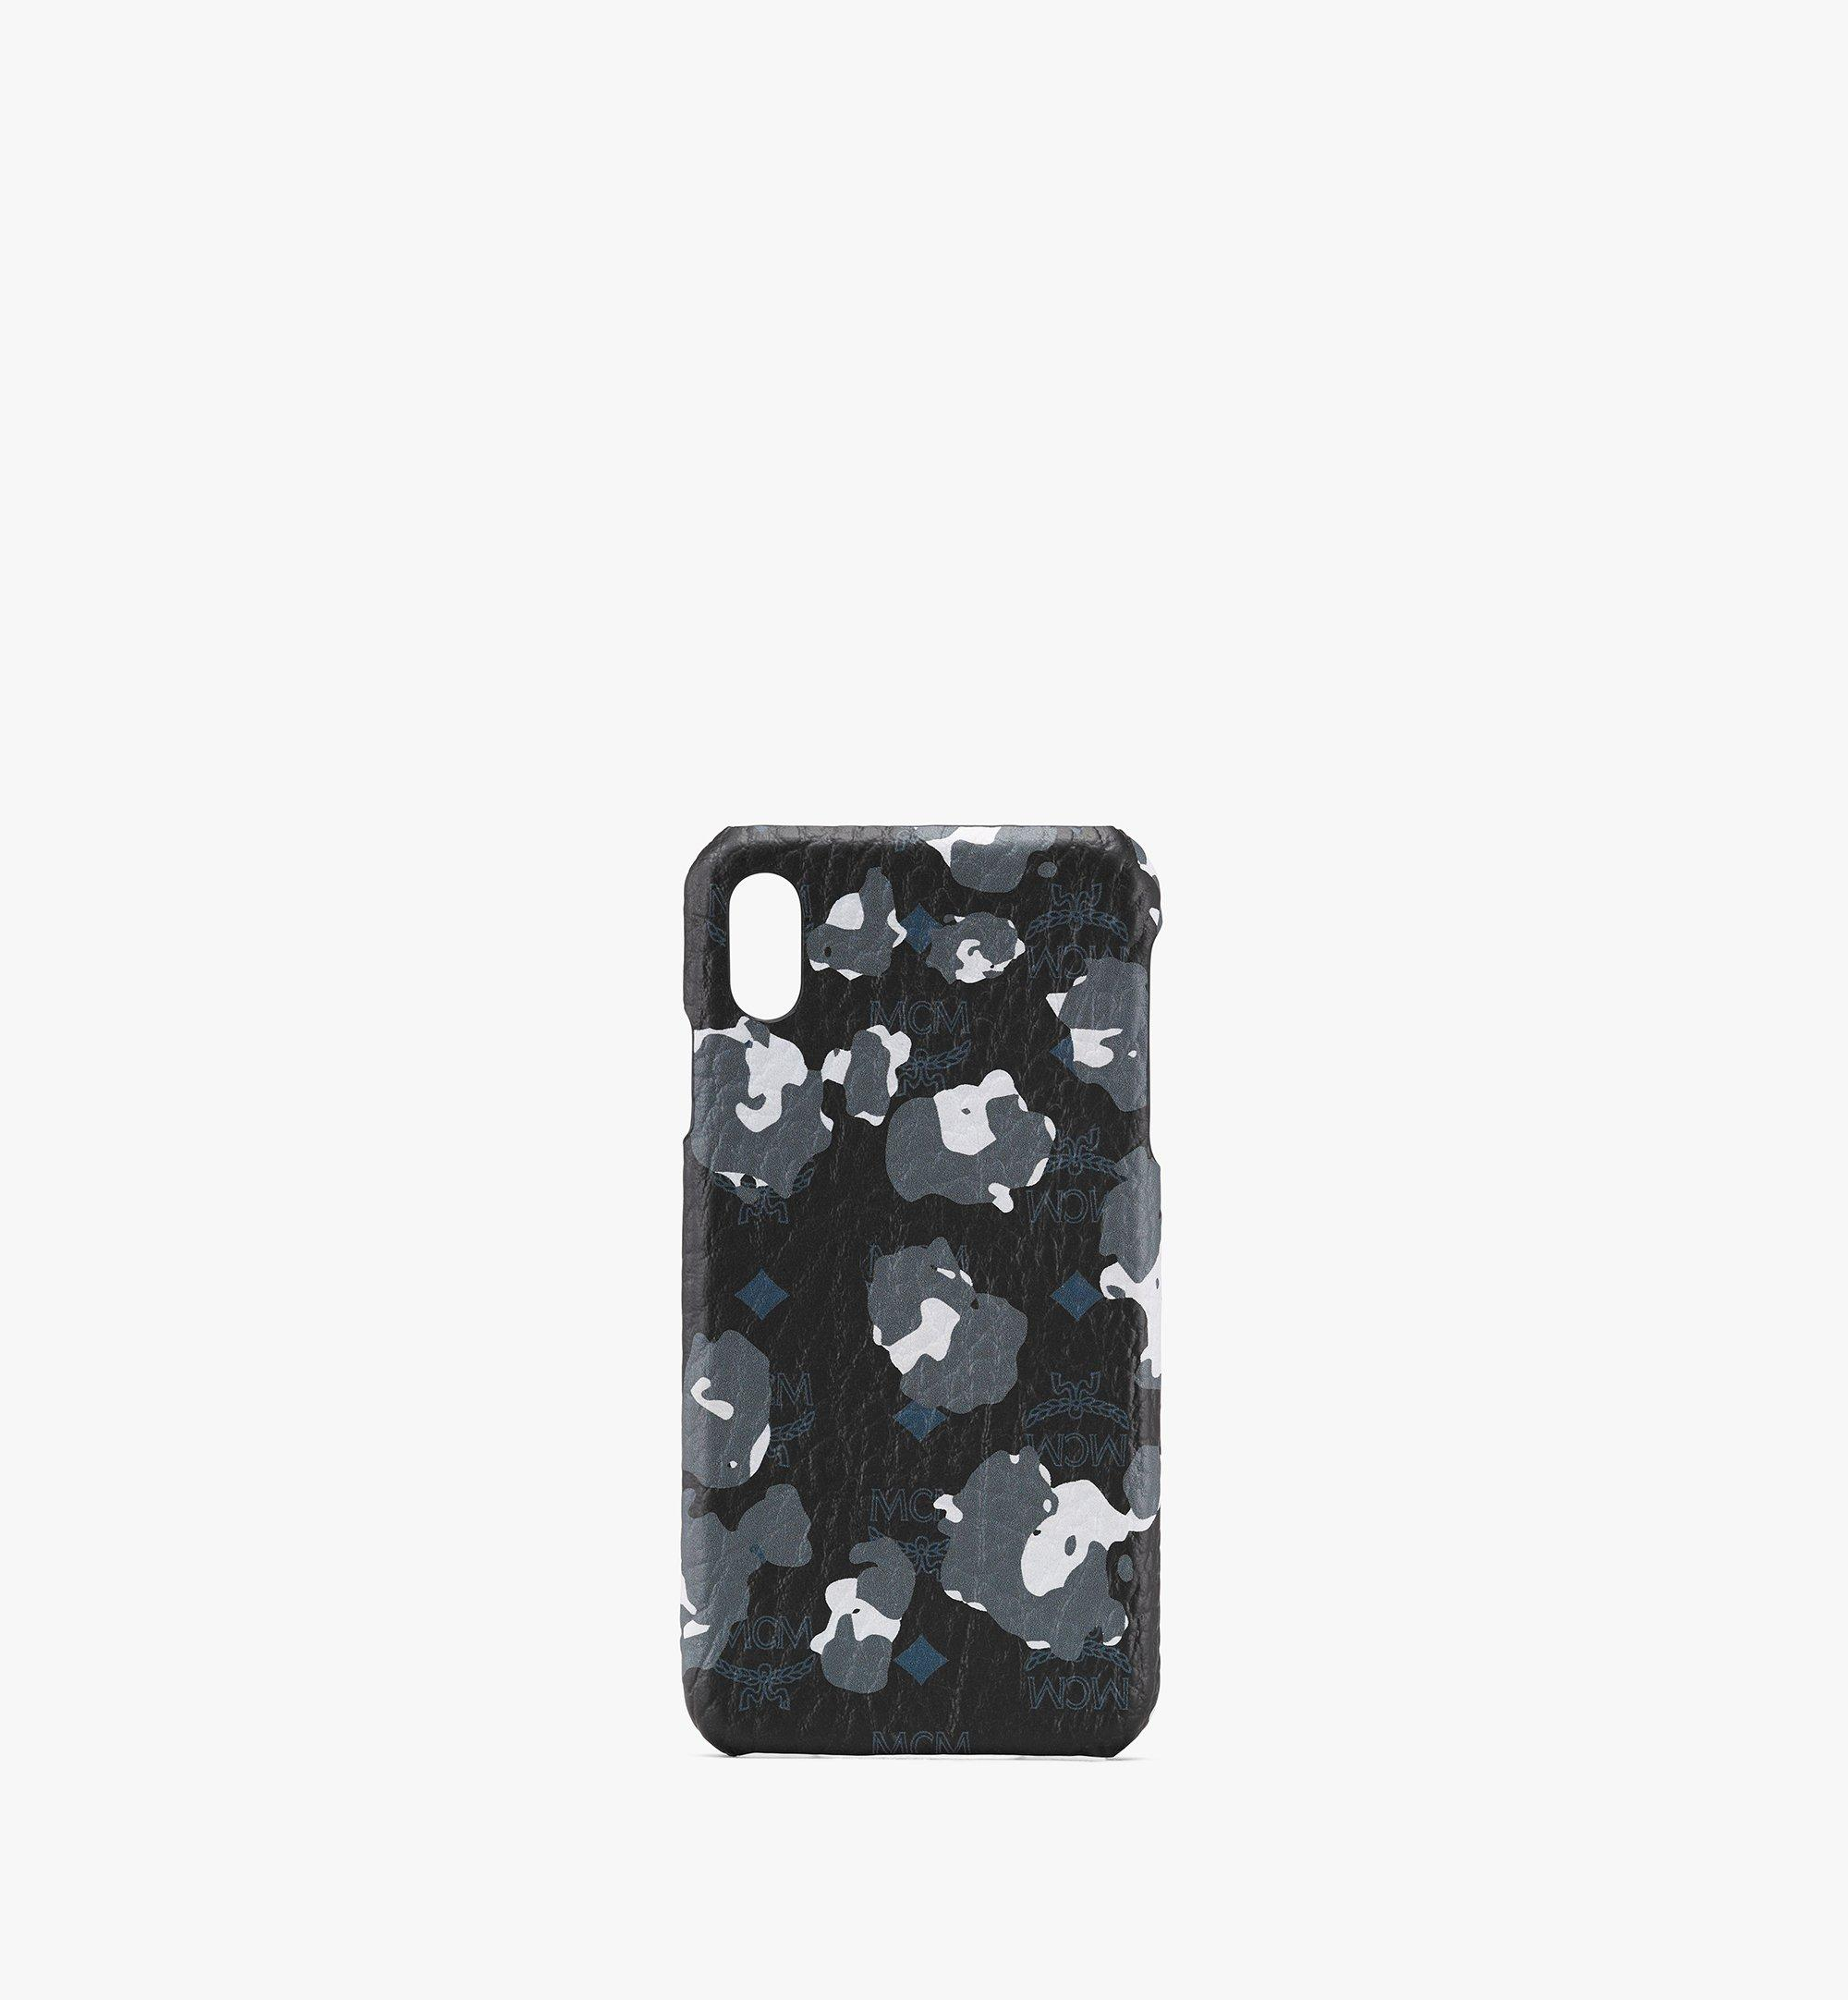 MCM iPhone XS Max Case in Floral Leopard Black MXEASLF02B1001 Alternate View 1